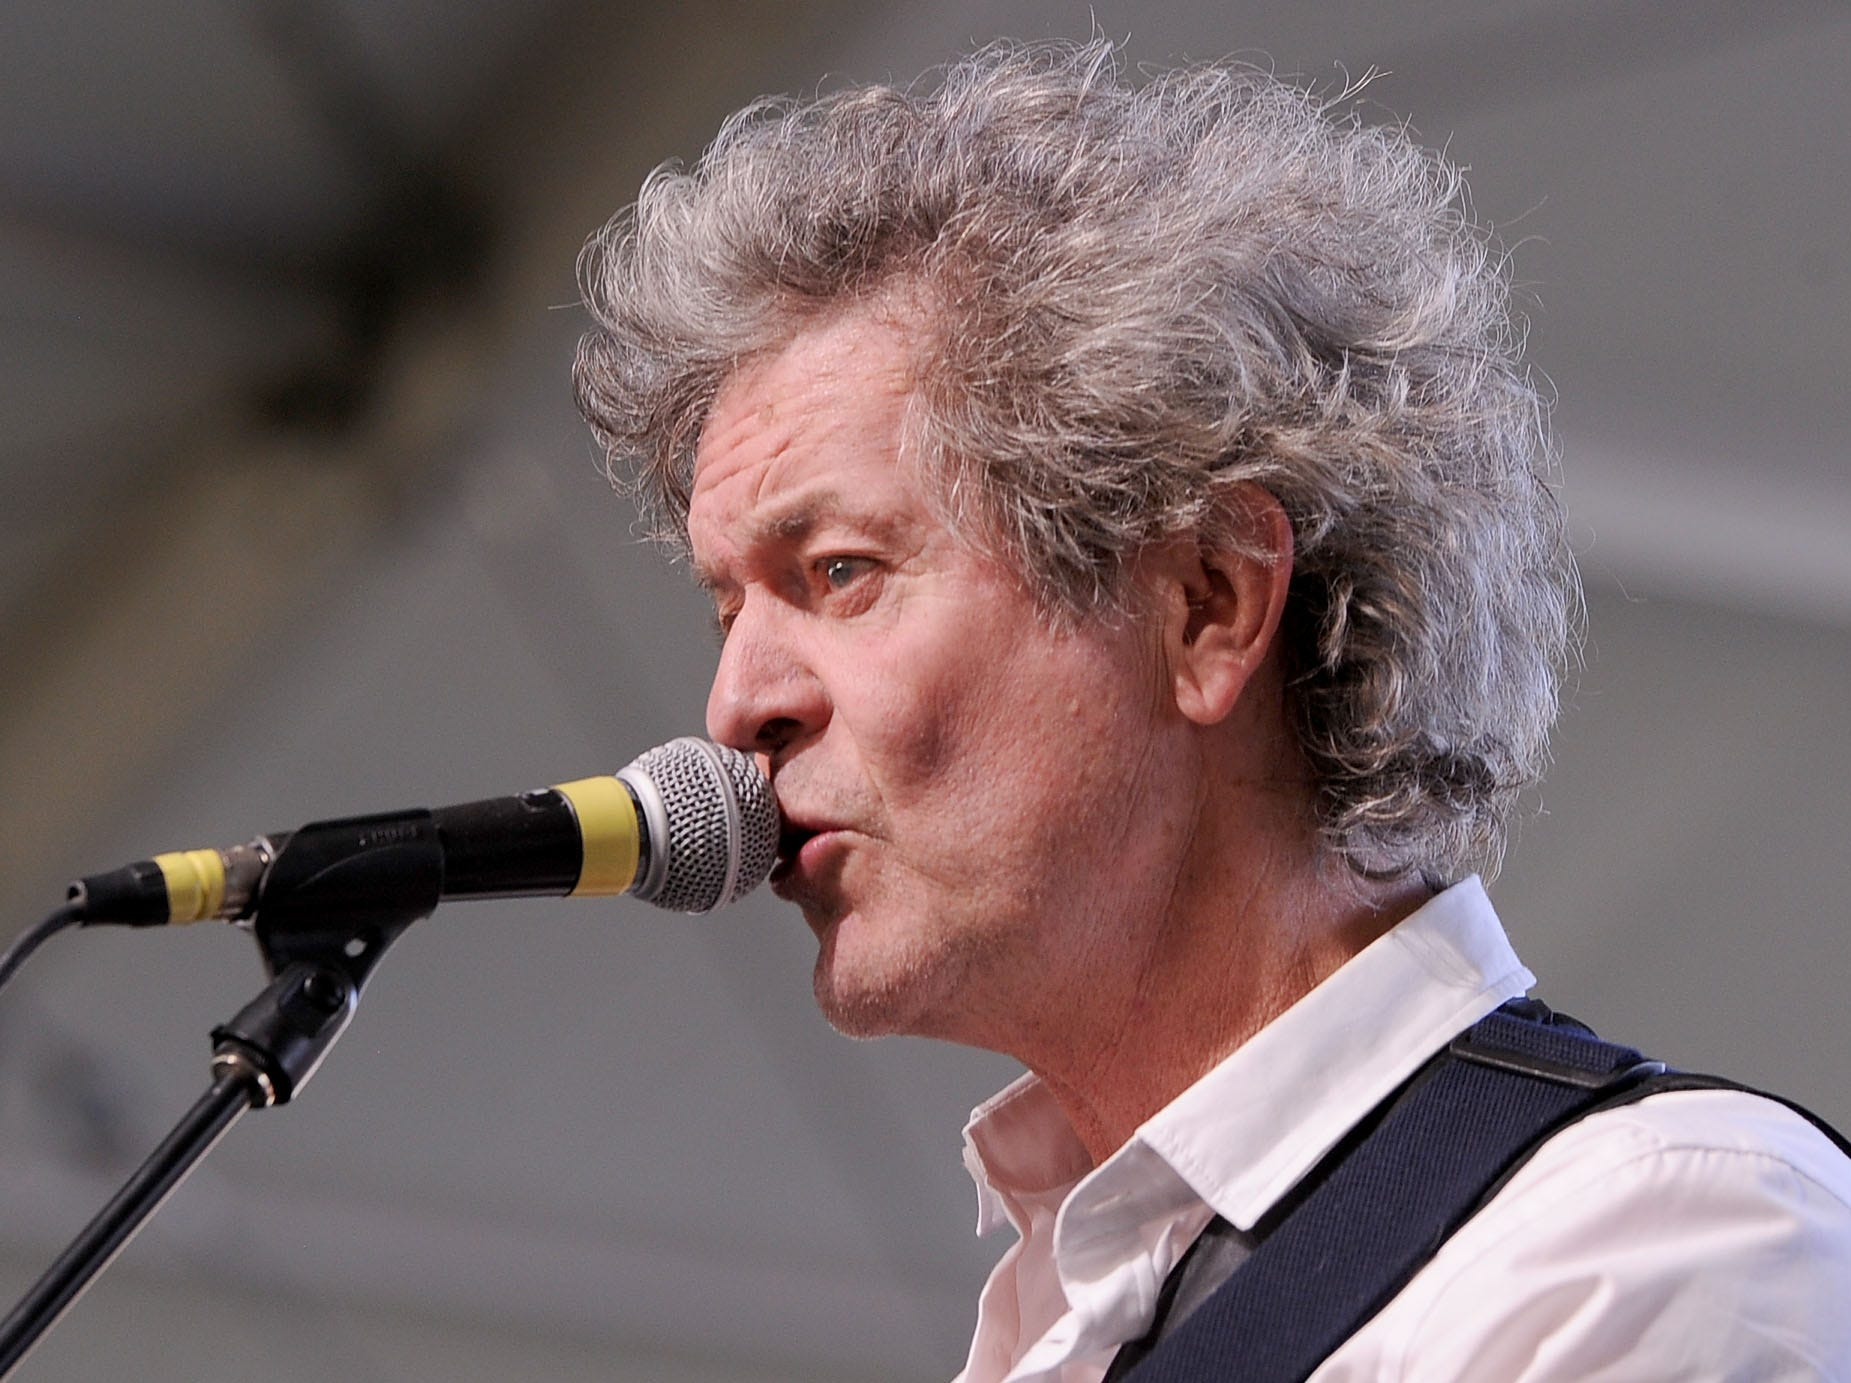 Rodney Crowell performs on April 30, 2011 in Indio, California.